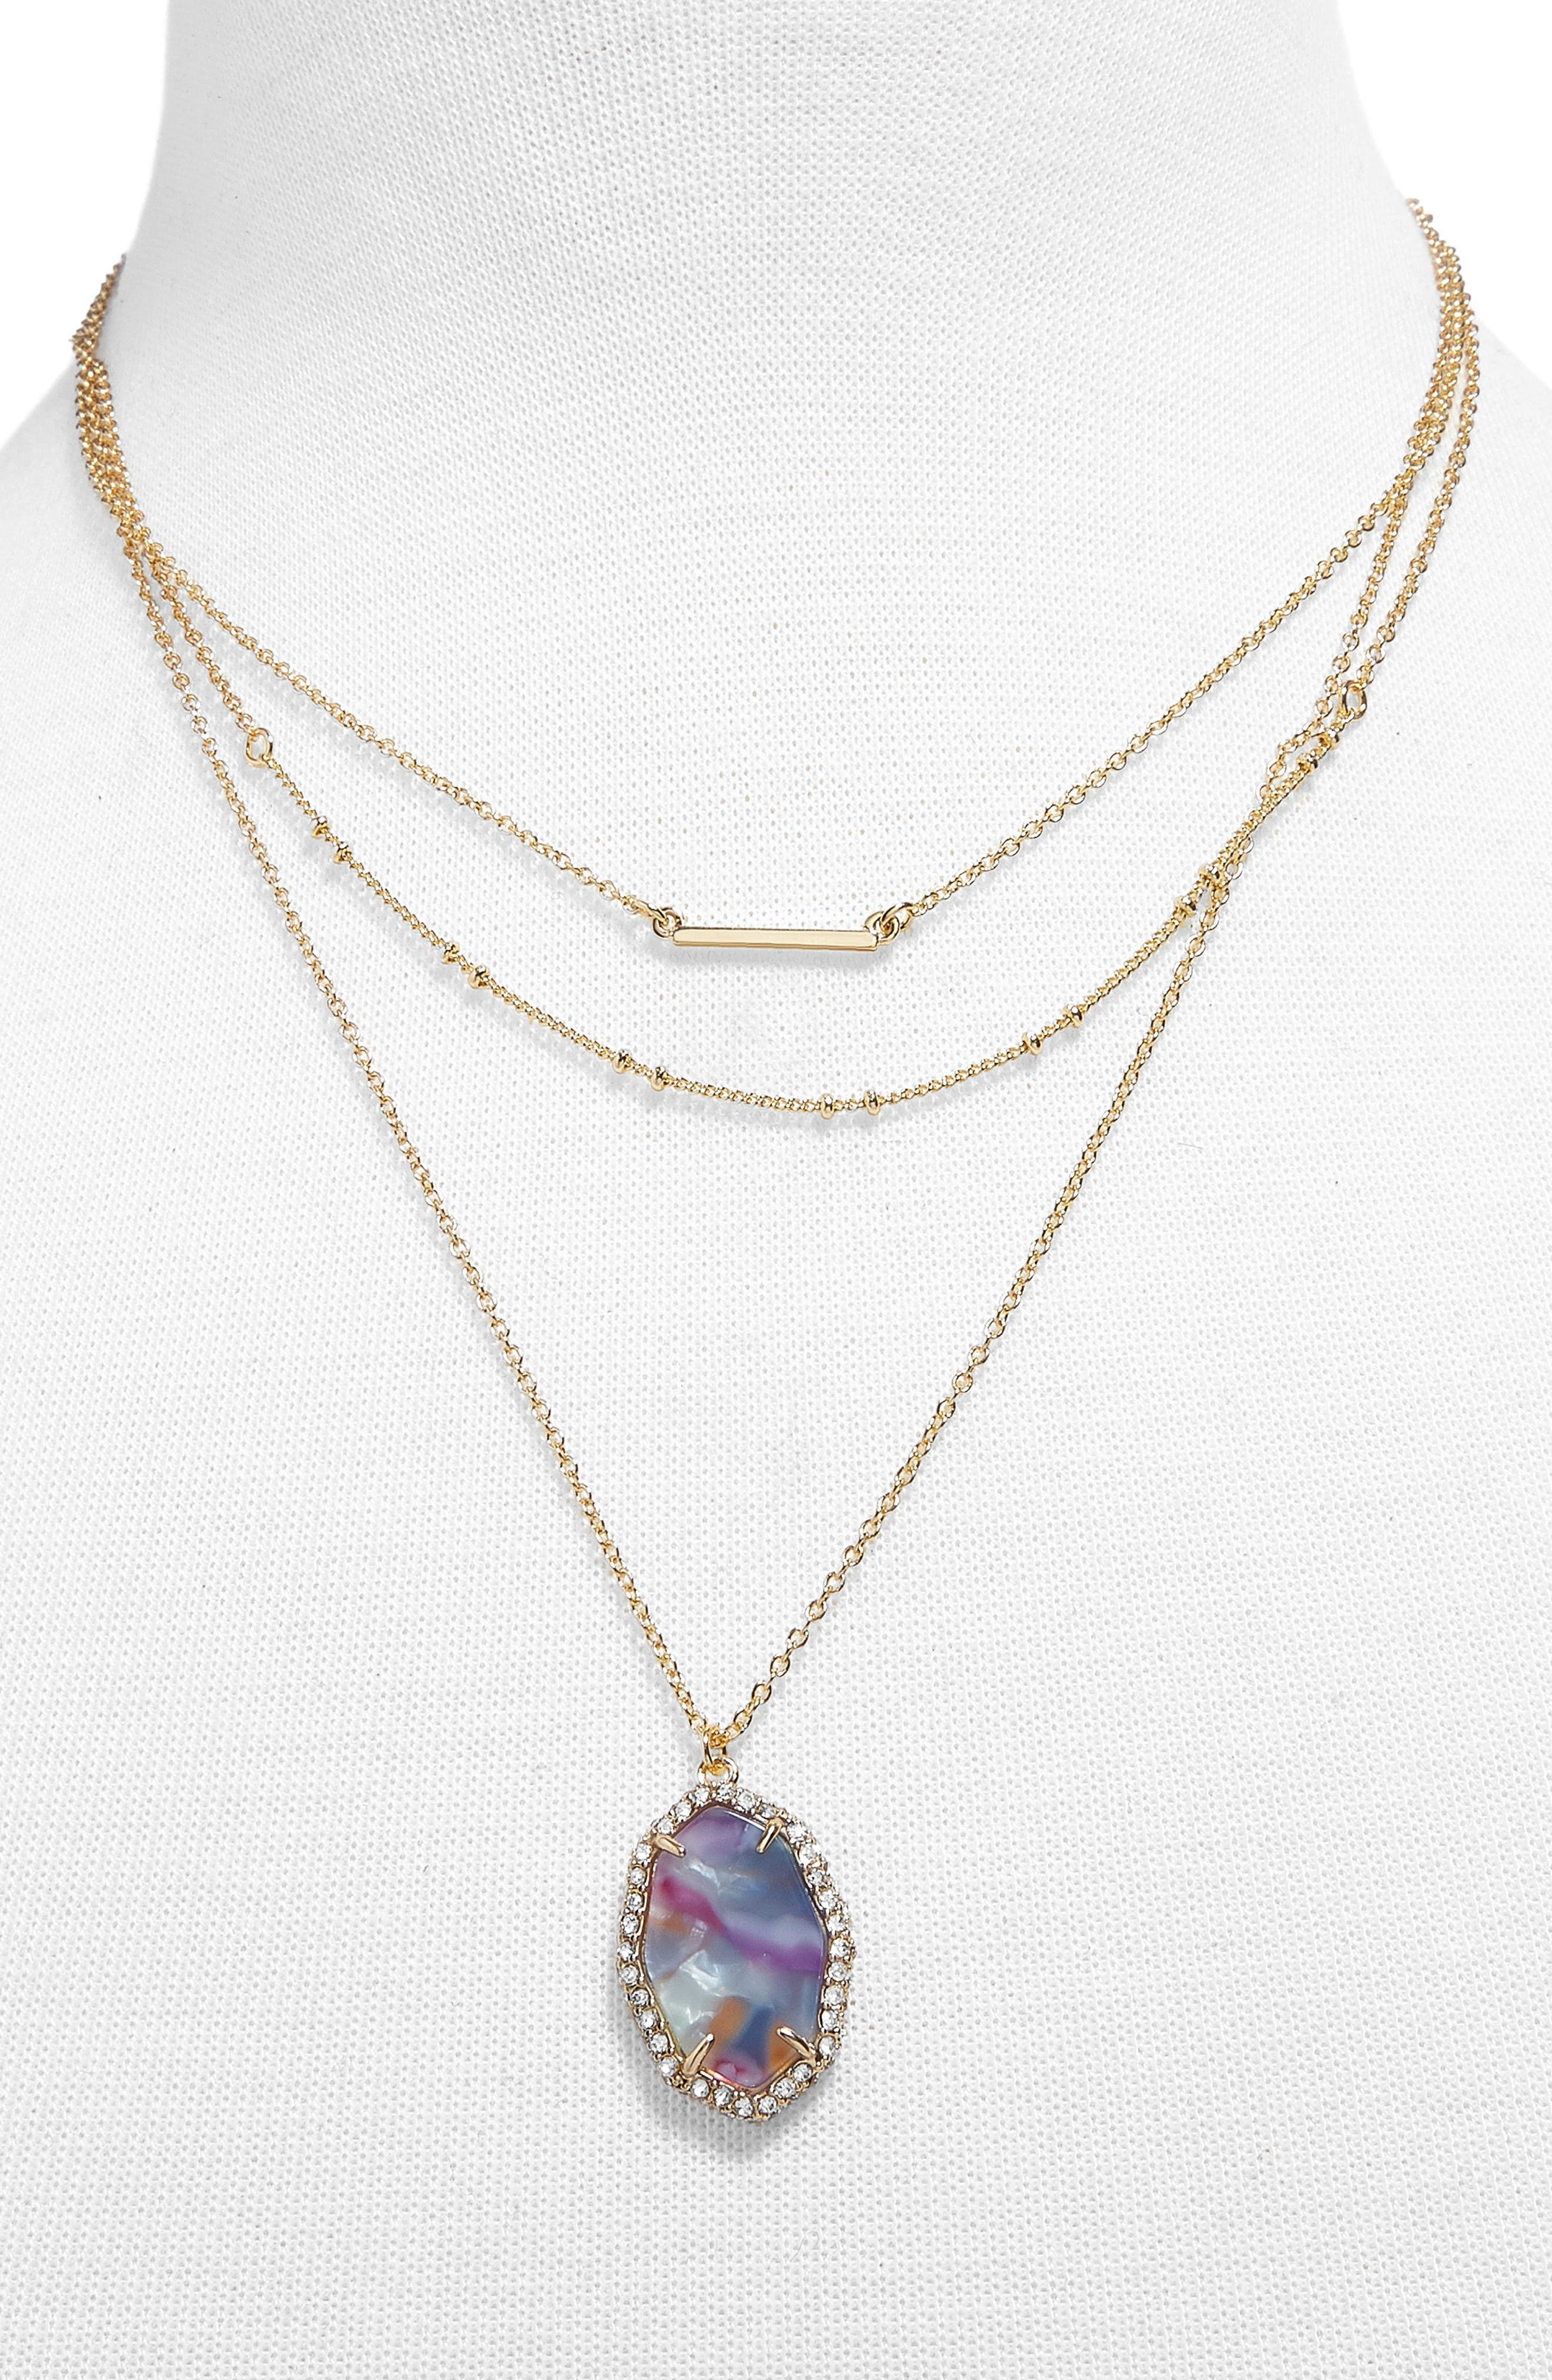 Ellory Layered Pendant Necklace,                             Main thumbnail 1, color,                             528